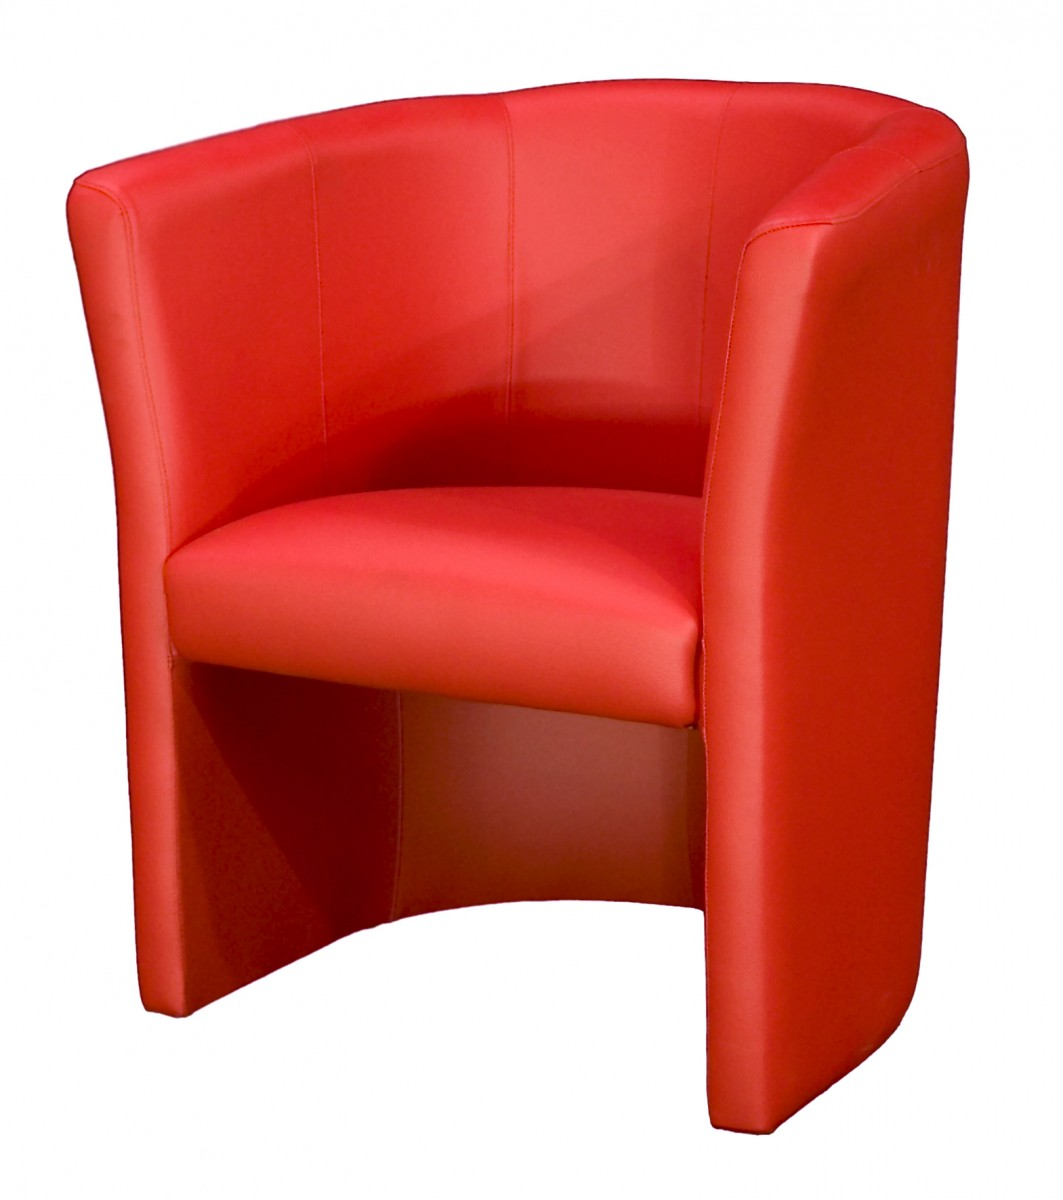 fauteuil cadran rouge mobilier location. Black Bedroom Furniture Sets. Home Design Ideas